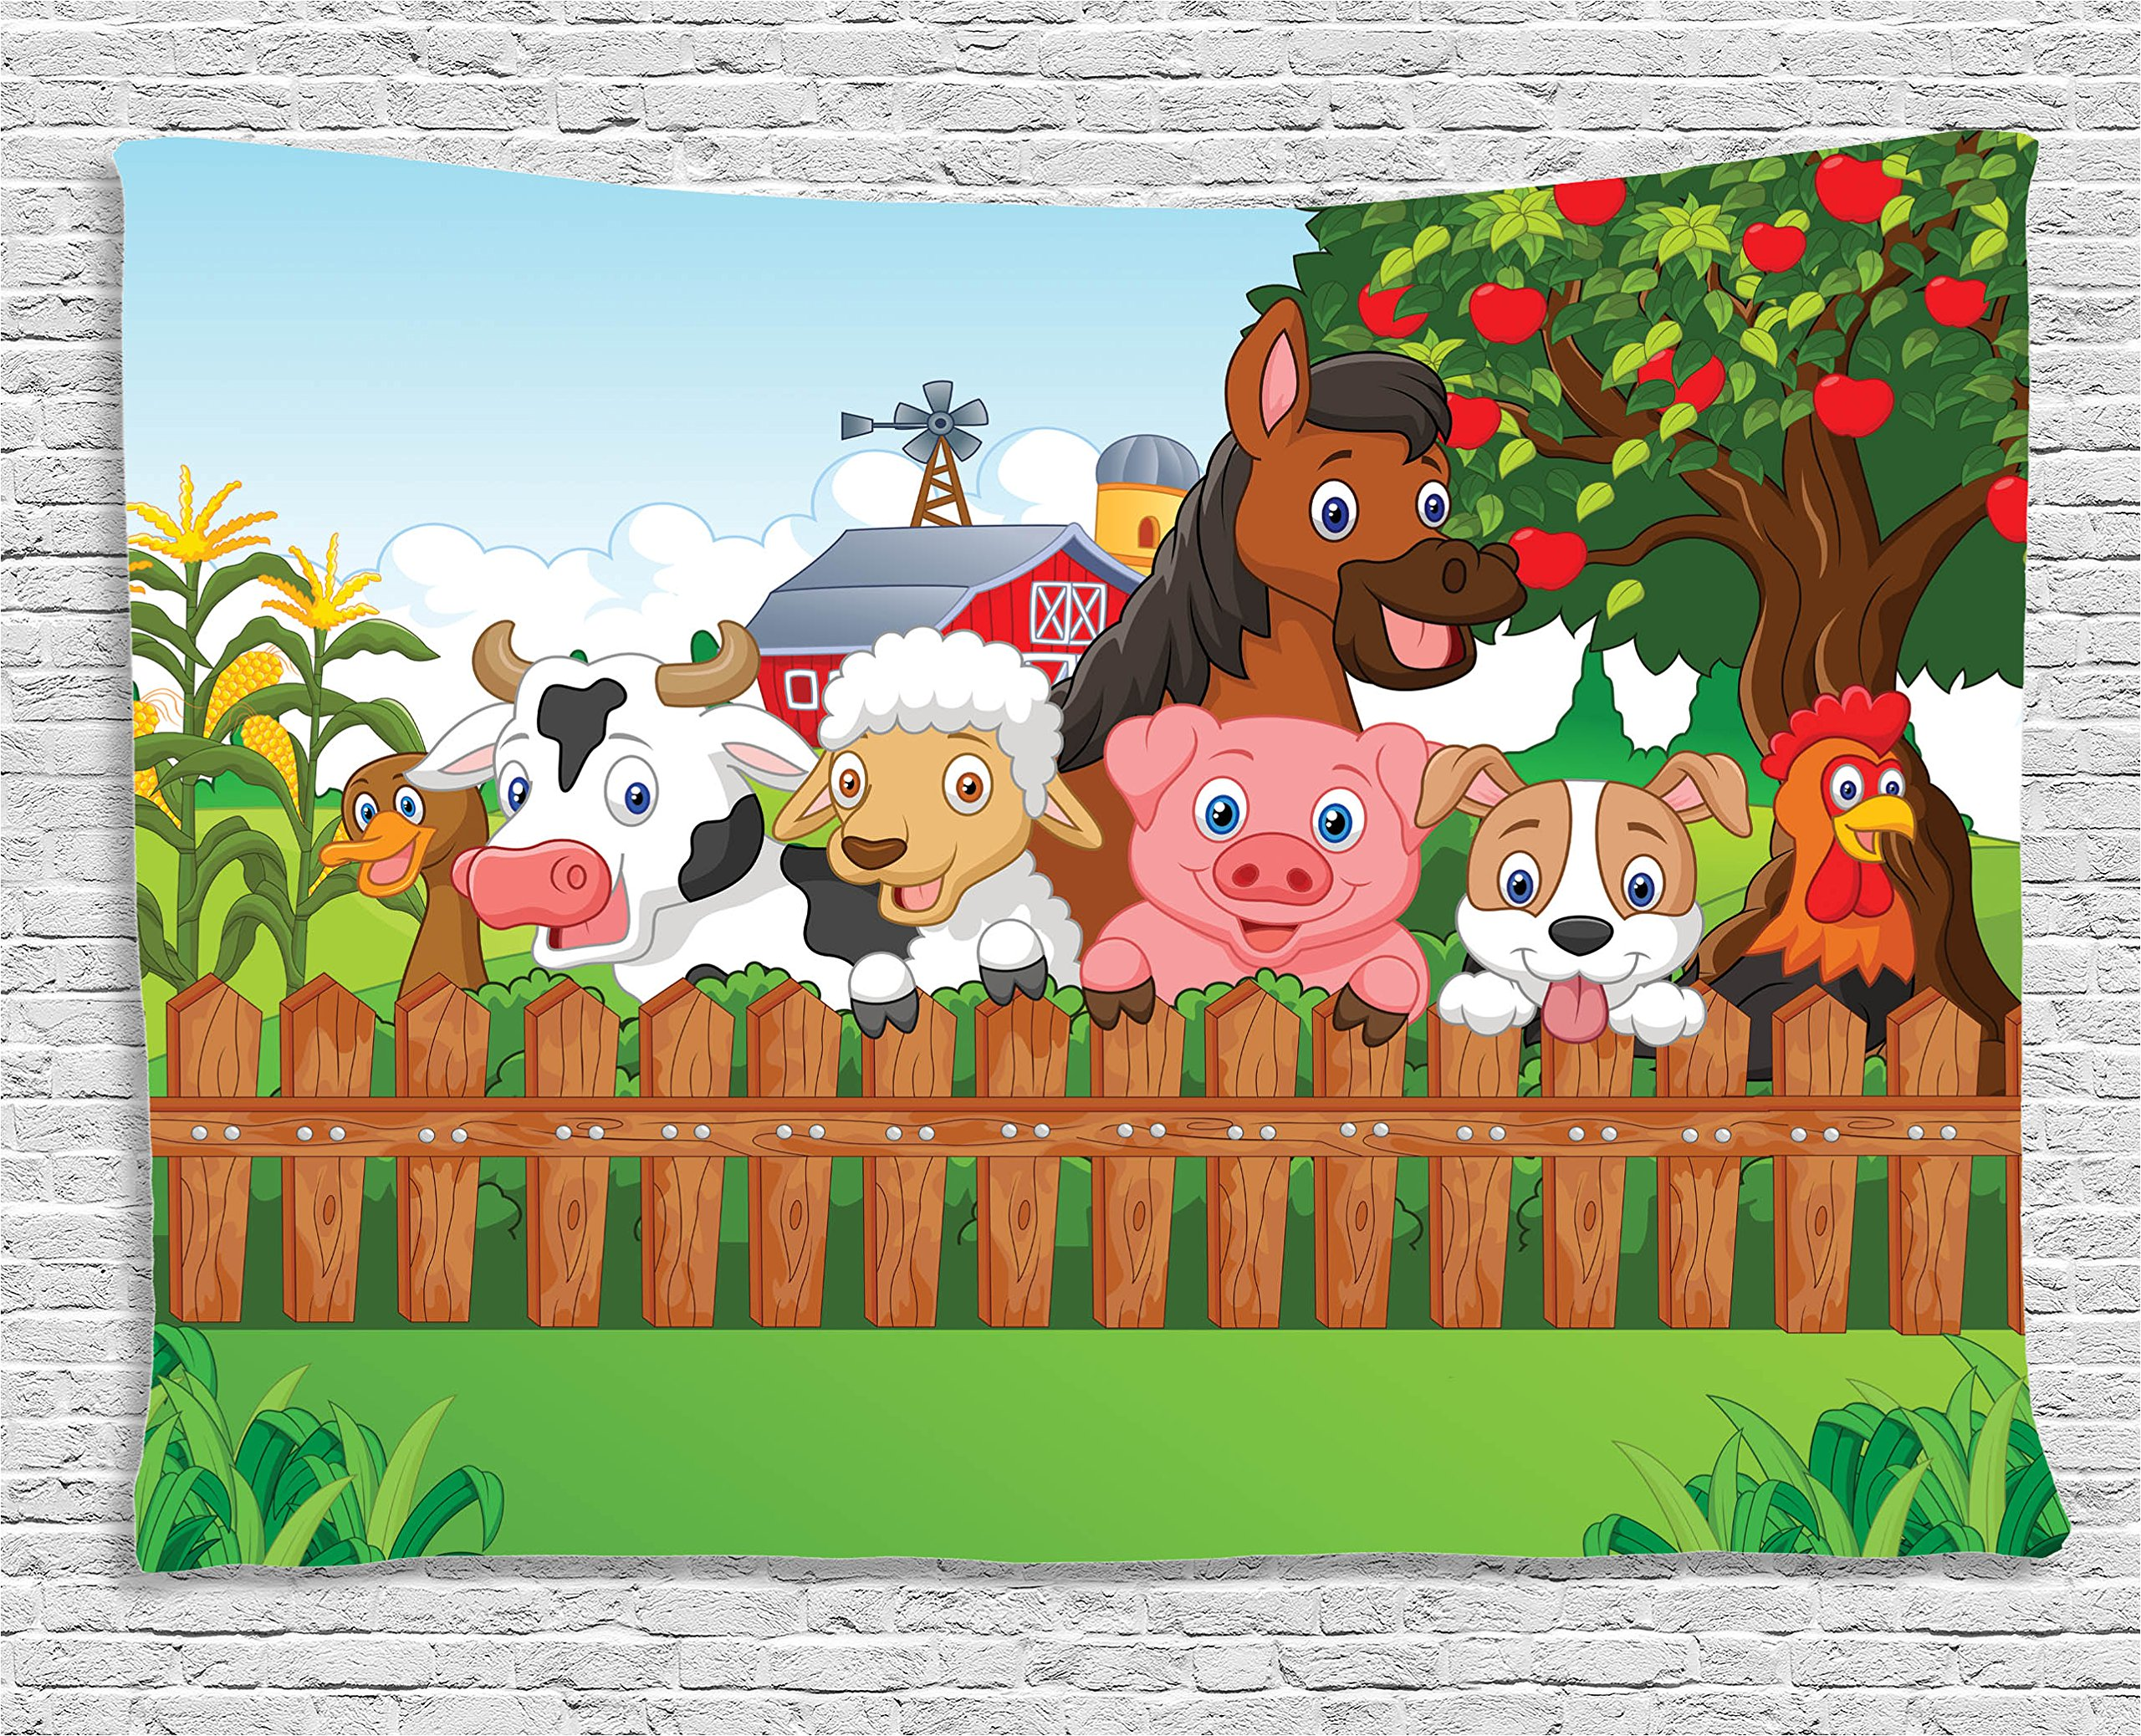 Ambesonne Cartoon Decor Tapestry, of Cute Farm Animals on the Fence Comic Mascots with Dog Cow Horse for Kids Decor, Wall Hanging for Bedroom Living Room Dorm, 80 X 60 Inches, Multi by Ambesonne